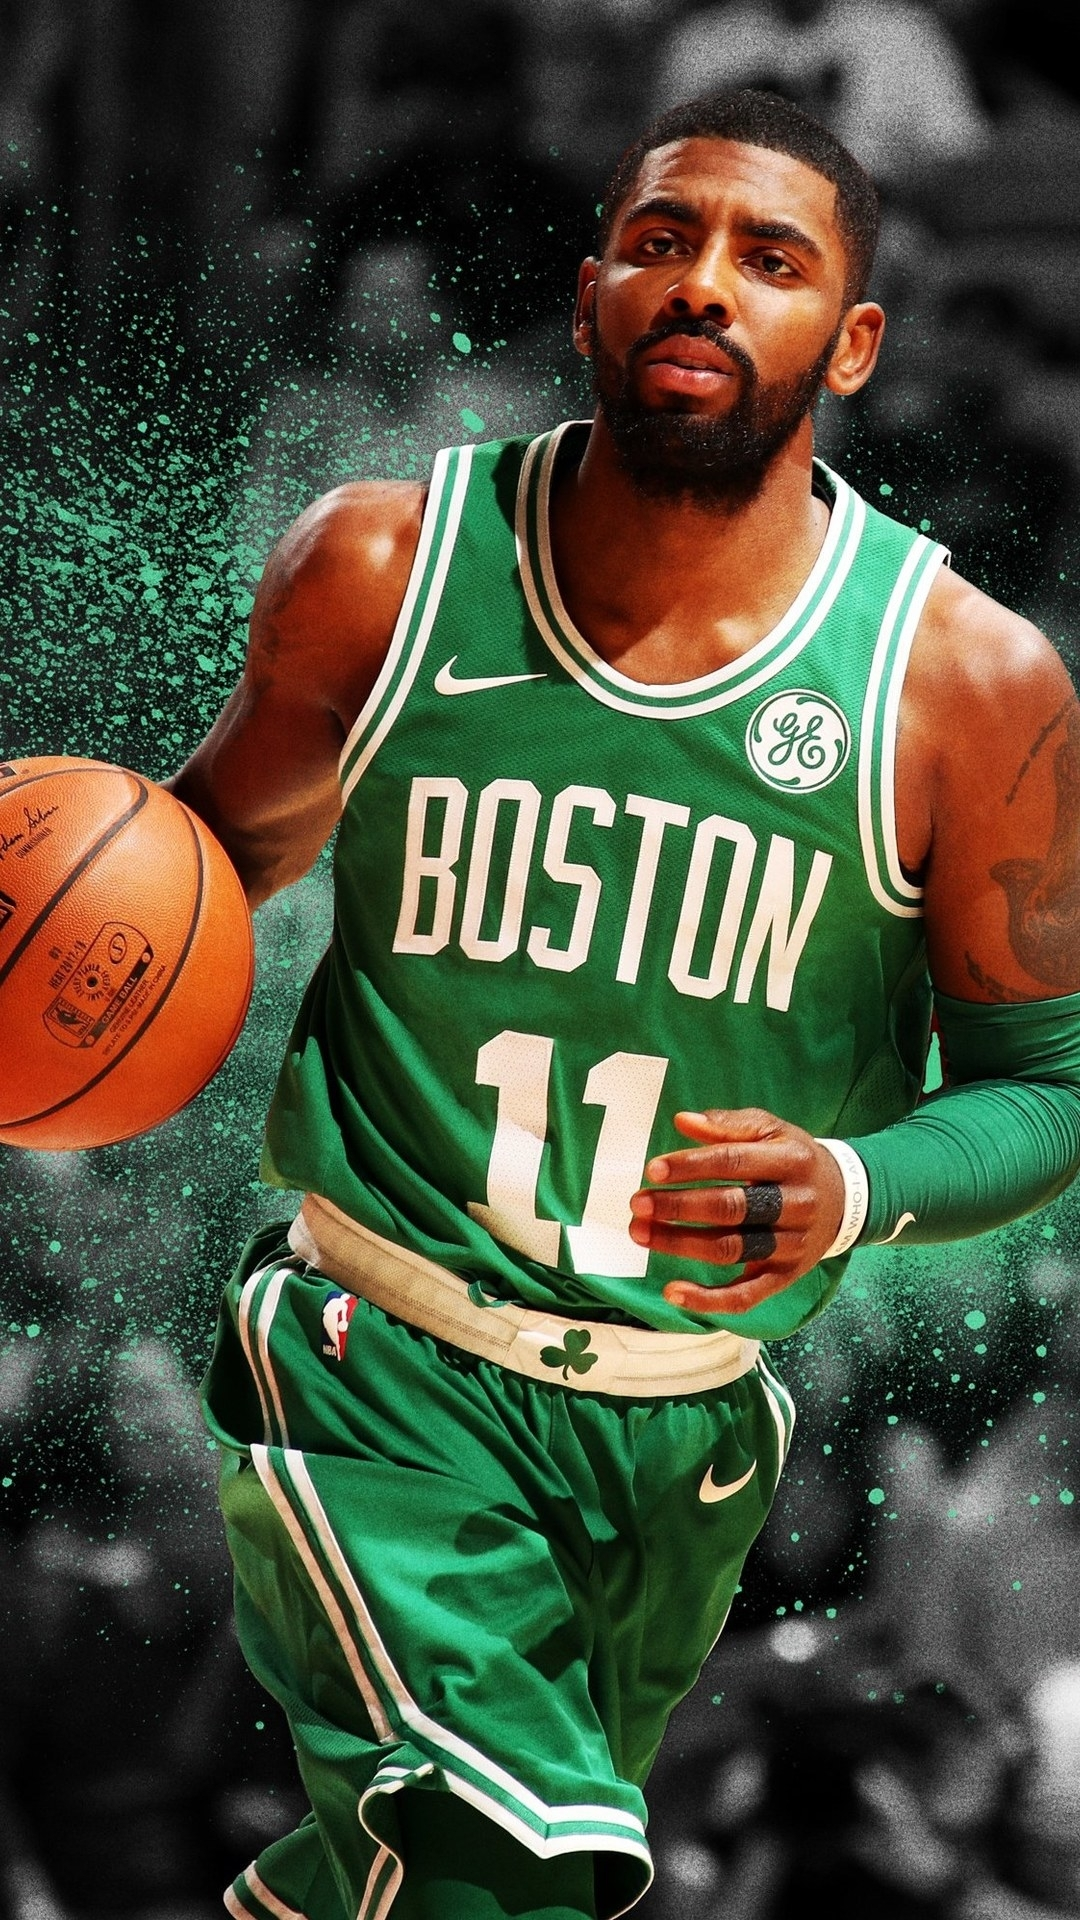 1080x1920 kyrie irving iphone 7,6s,6 plus, pixel xl ,one plus 3,3t,5